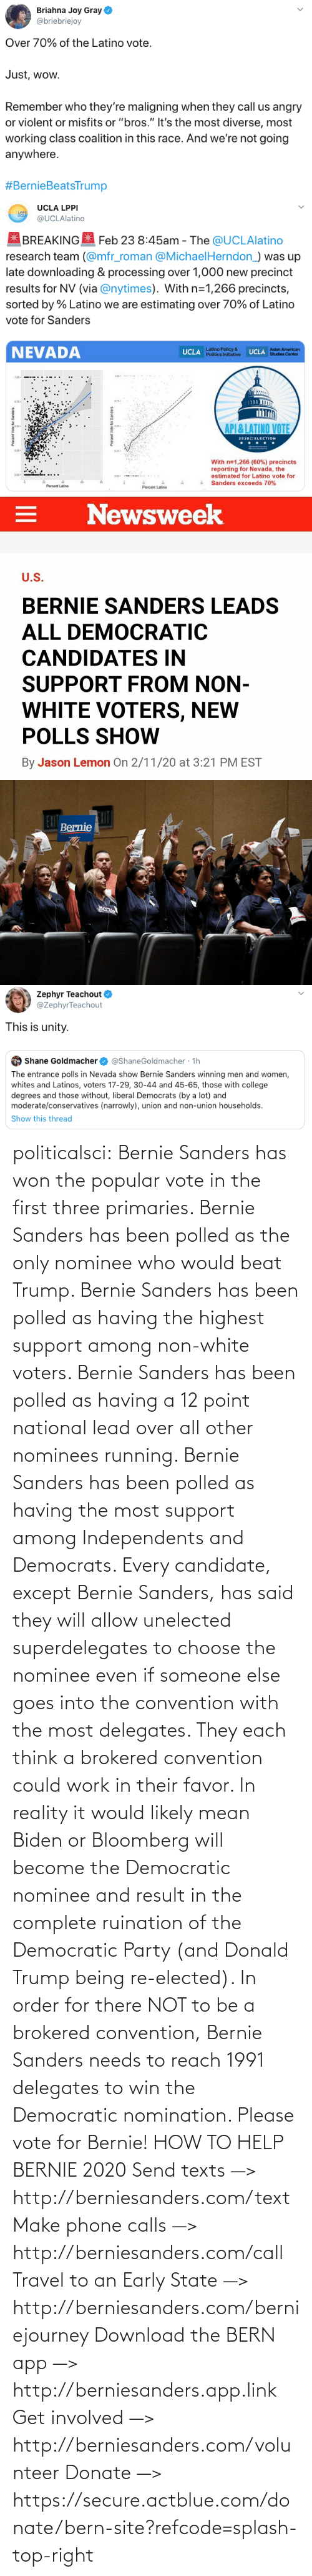 Become: politicalsci: Bernie Sanders has won the popular vote in the first three primaries. Bernie Sanders has  been polled as the only nominee who would beat Trump. Bernie Sanders  has been polled as having the highest support among non-white voters.  Bernie Sanders has been polled as having a 12 point national lead over  all other nominees running. Bernie Sanders has been polled as having the most support among Independents and Democrats.  Every candidate, except Bernie Sanders, has said they will allow  unelected superdelegates to choose the nominee even if someone else goes  into the convention with the most delegates. They each think a brokered  convention could work in their favor. In  reality it would likely mean Biden or Bloomberg will become the  Democratic nominee and result in the complete ruination of the  Democratic Party (and Donald Trump being re-elected). In order for there  NOT to be a brokered  convention, Bernie Sanders needs to reach 1991 delegates to win the  Democratic  nomination. Please vote for Bernie!  HOW TO HELP BERNIE 2020 Send texts —> http://berniesanders.com/text  Make phone calls —> http://berniesanders.com/call  Travel to an Early State —> http://berniesanders.com/berniejourney  Download the BERN app —> http://berniesanders.app.link  Get involved —> http://berniesanders.com/volunteer Donate —> https://secure.actblue.com/donate/bern-site?refcode=splash-top-right